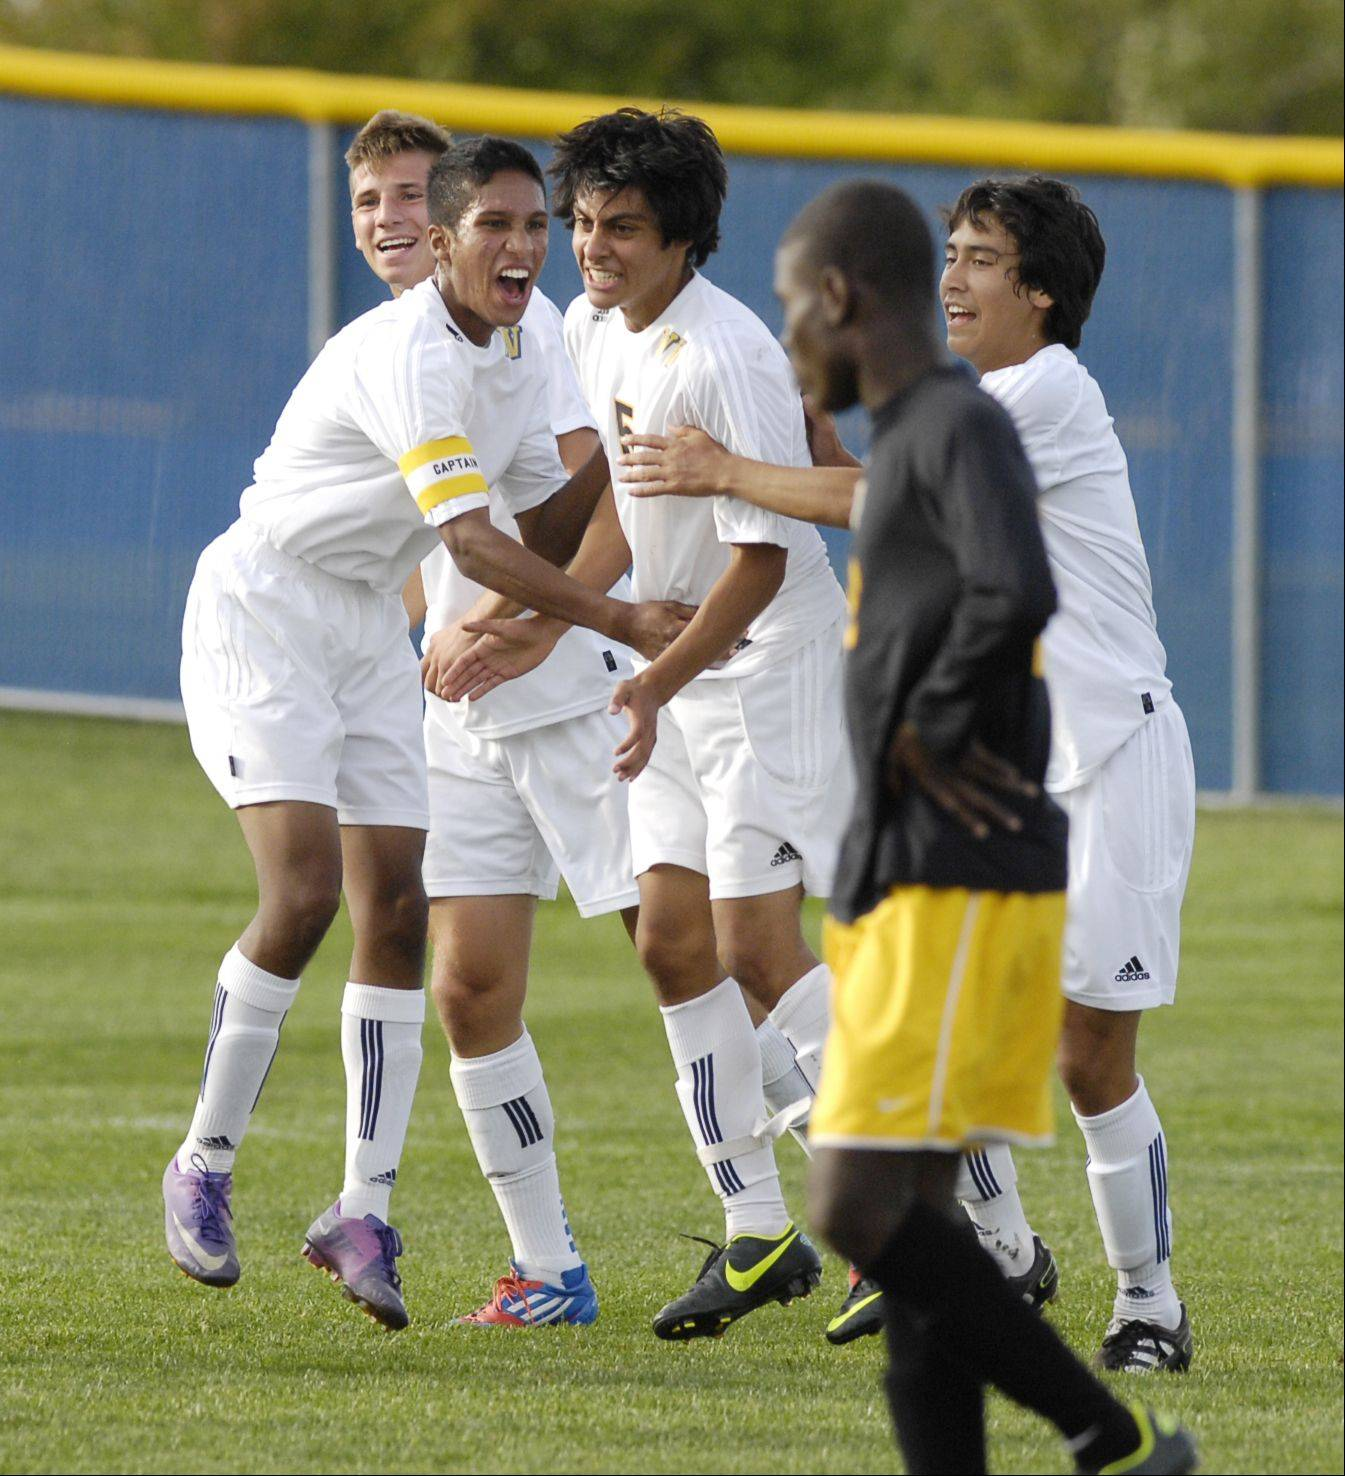 Neuqua Valley celebrates a goal by Eduardo Cruz, 5, during boys soccer action against Metea Valley at home.